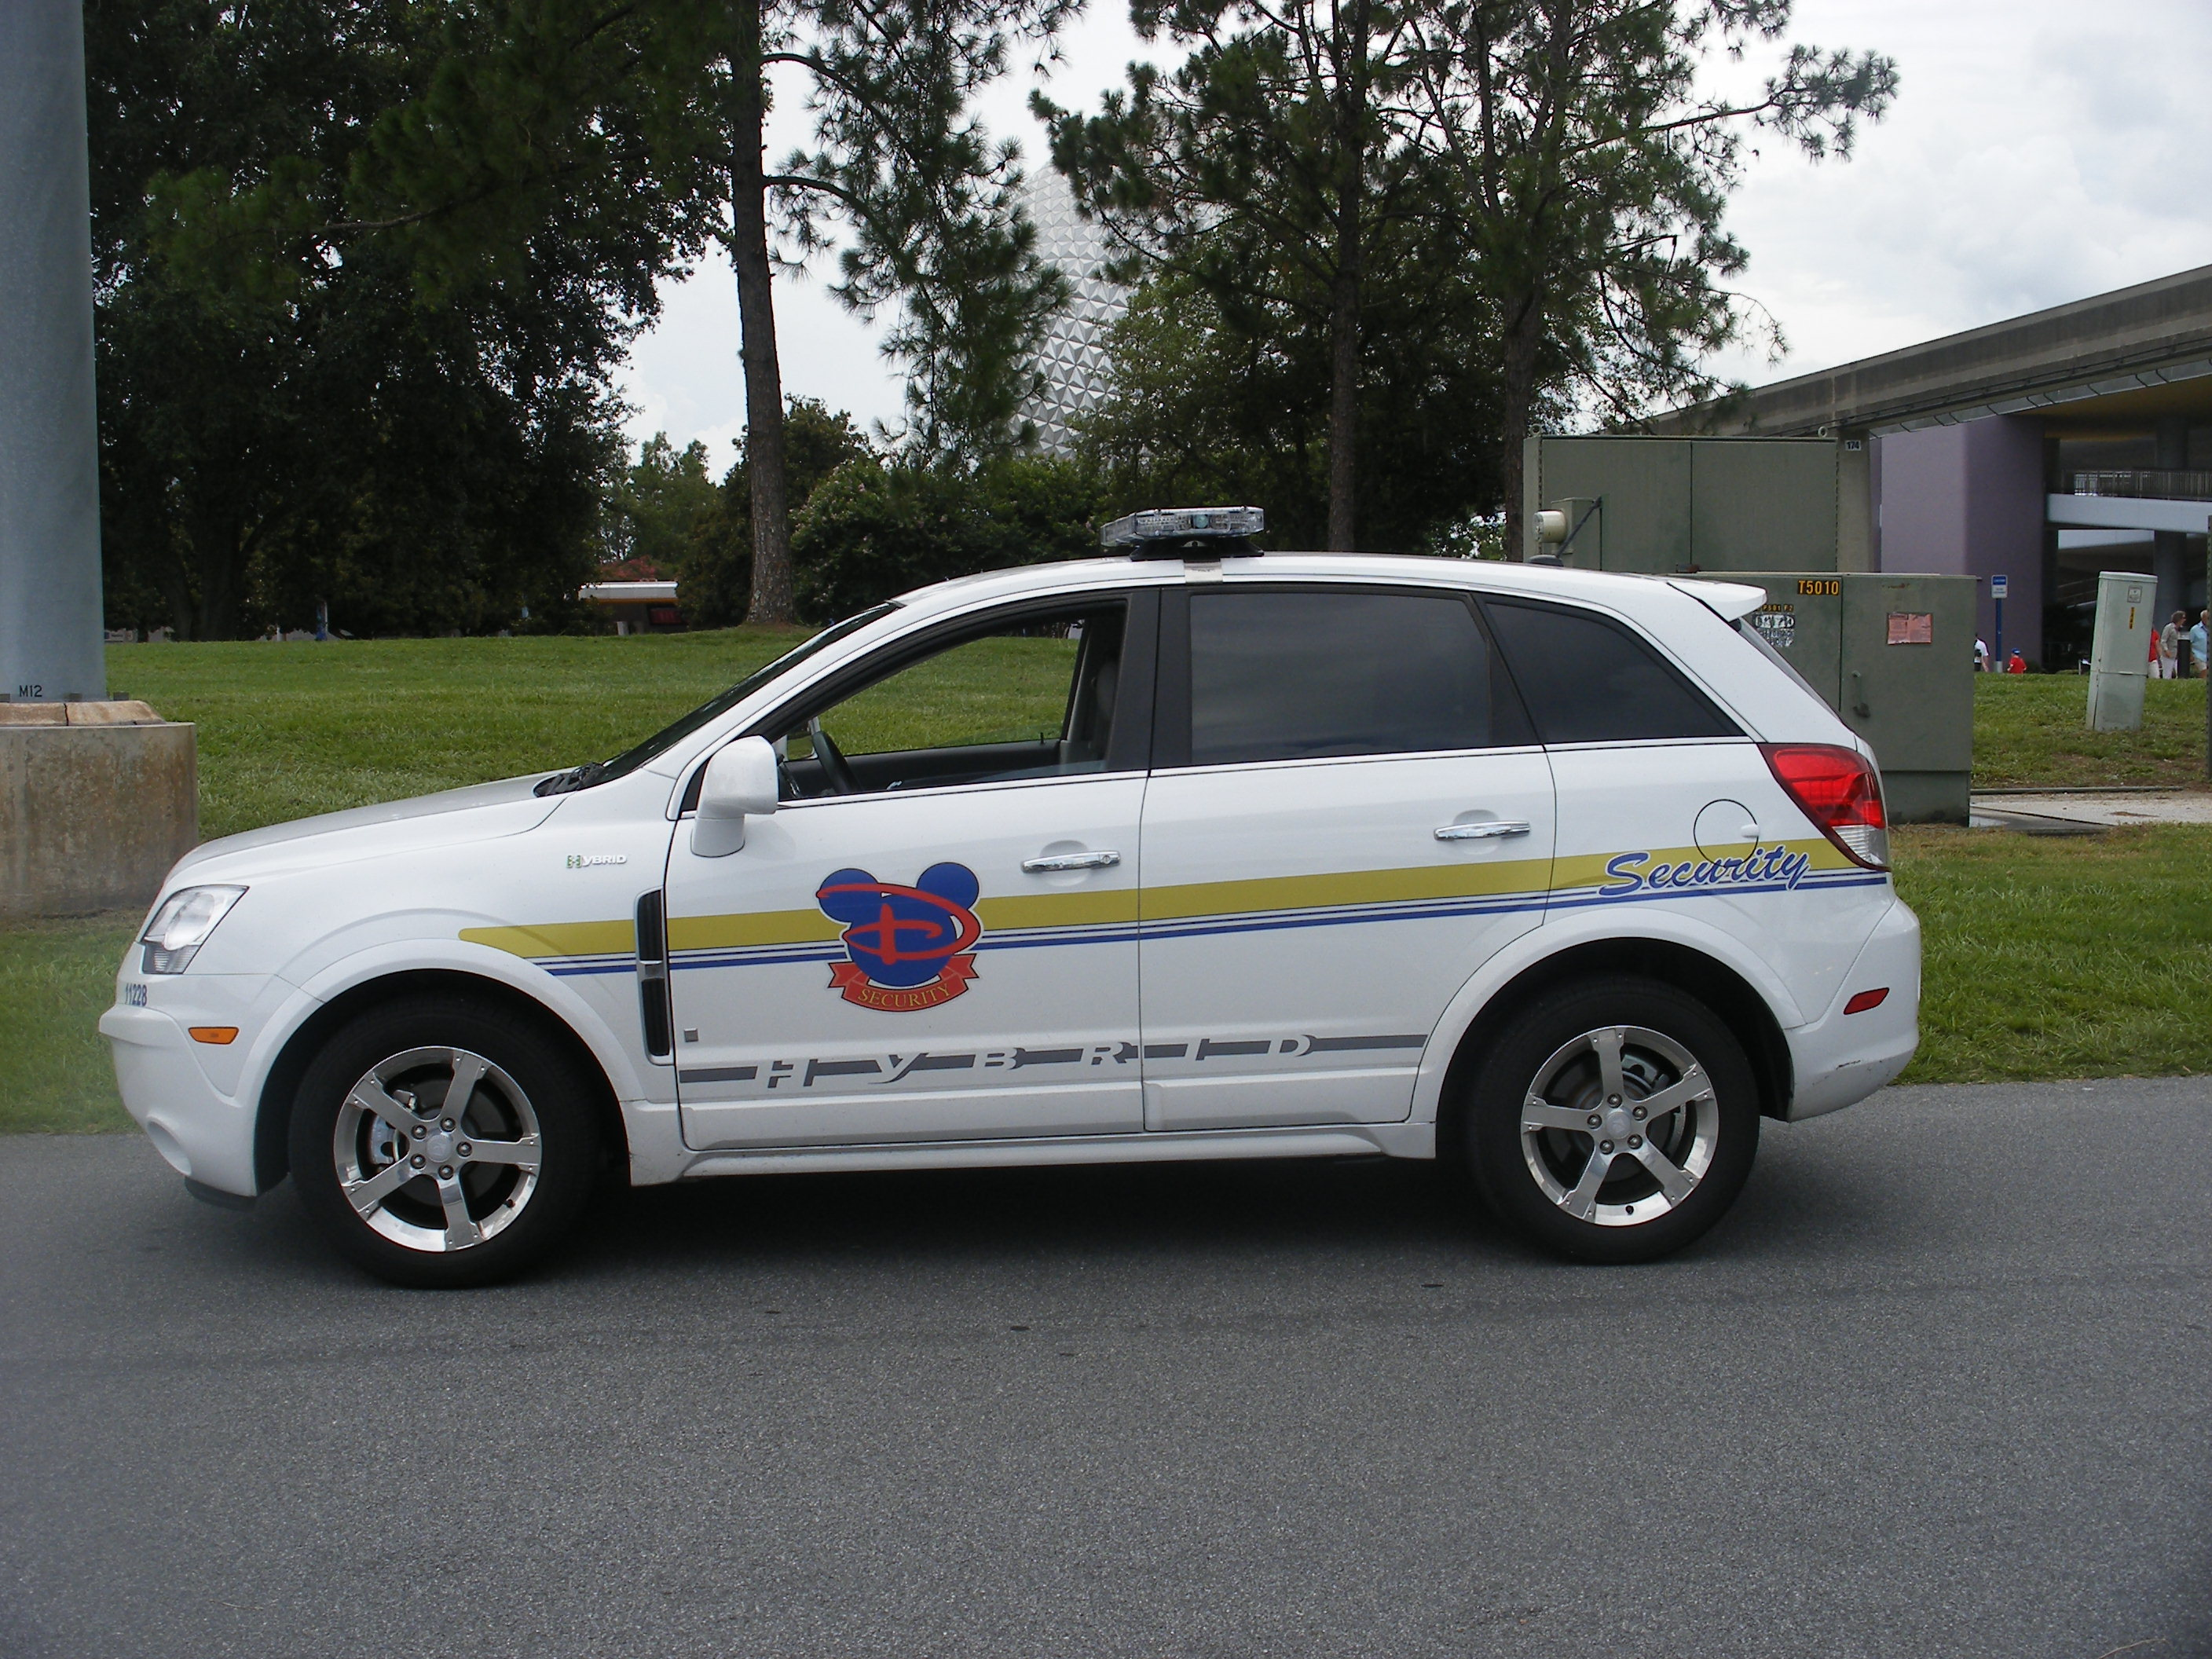 Walt Disney World security car outside of Epcot